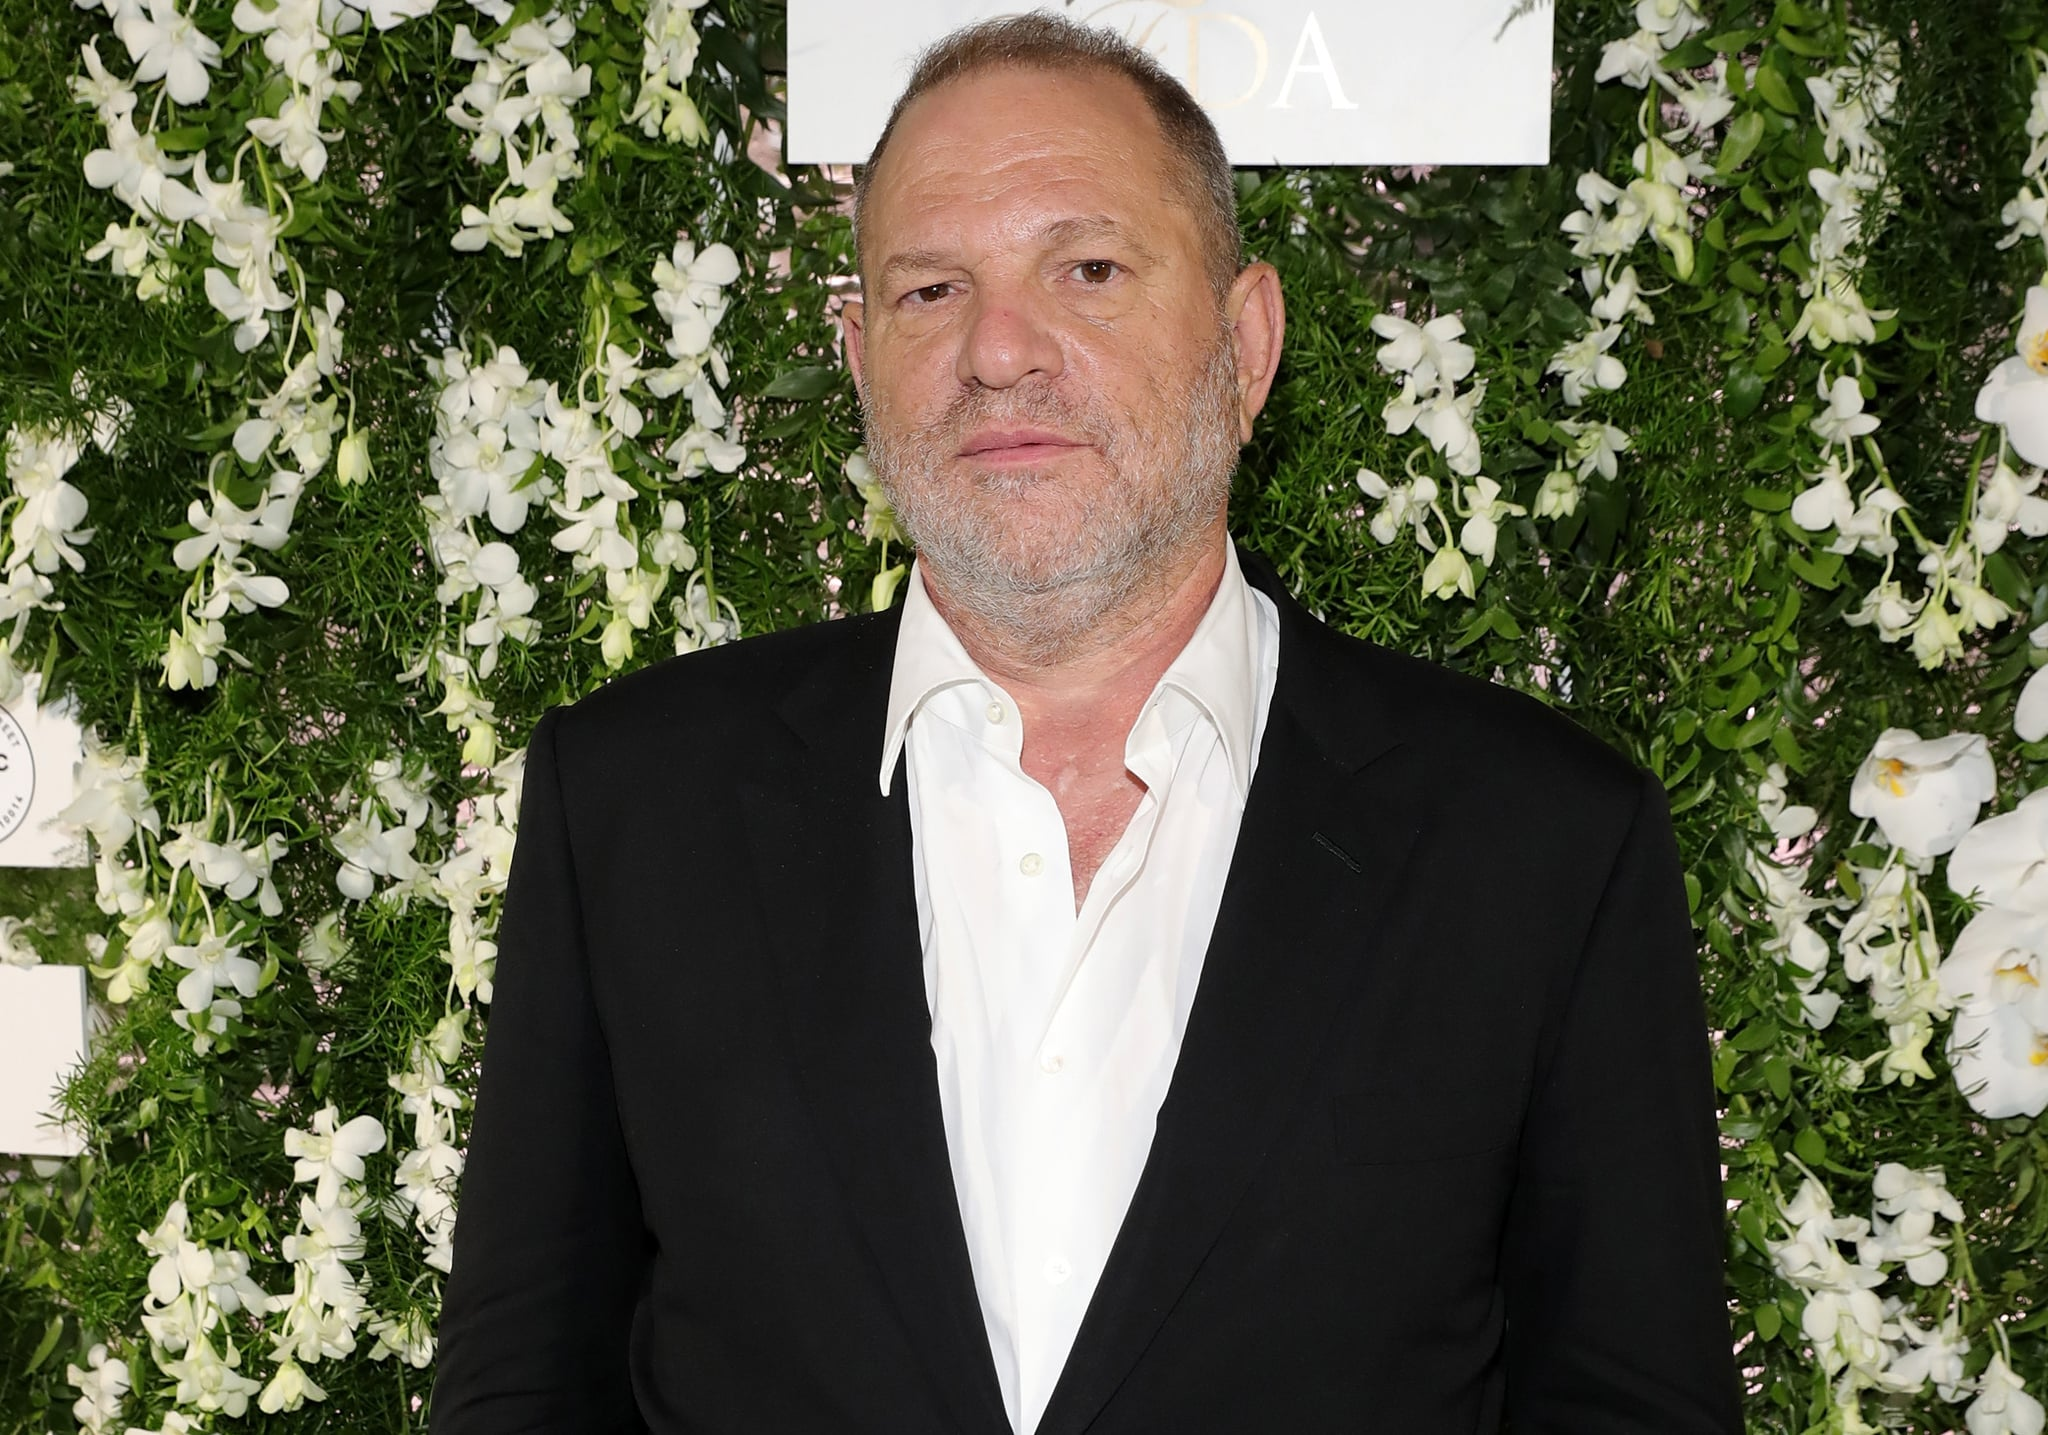 Harvey Weinstein Allegedly Masturbated in Front Of Reporter, Lisa Bloom Resigns